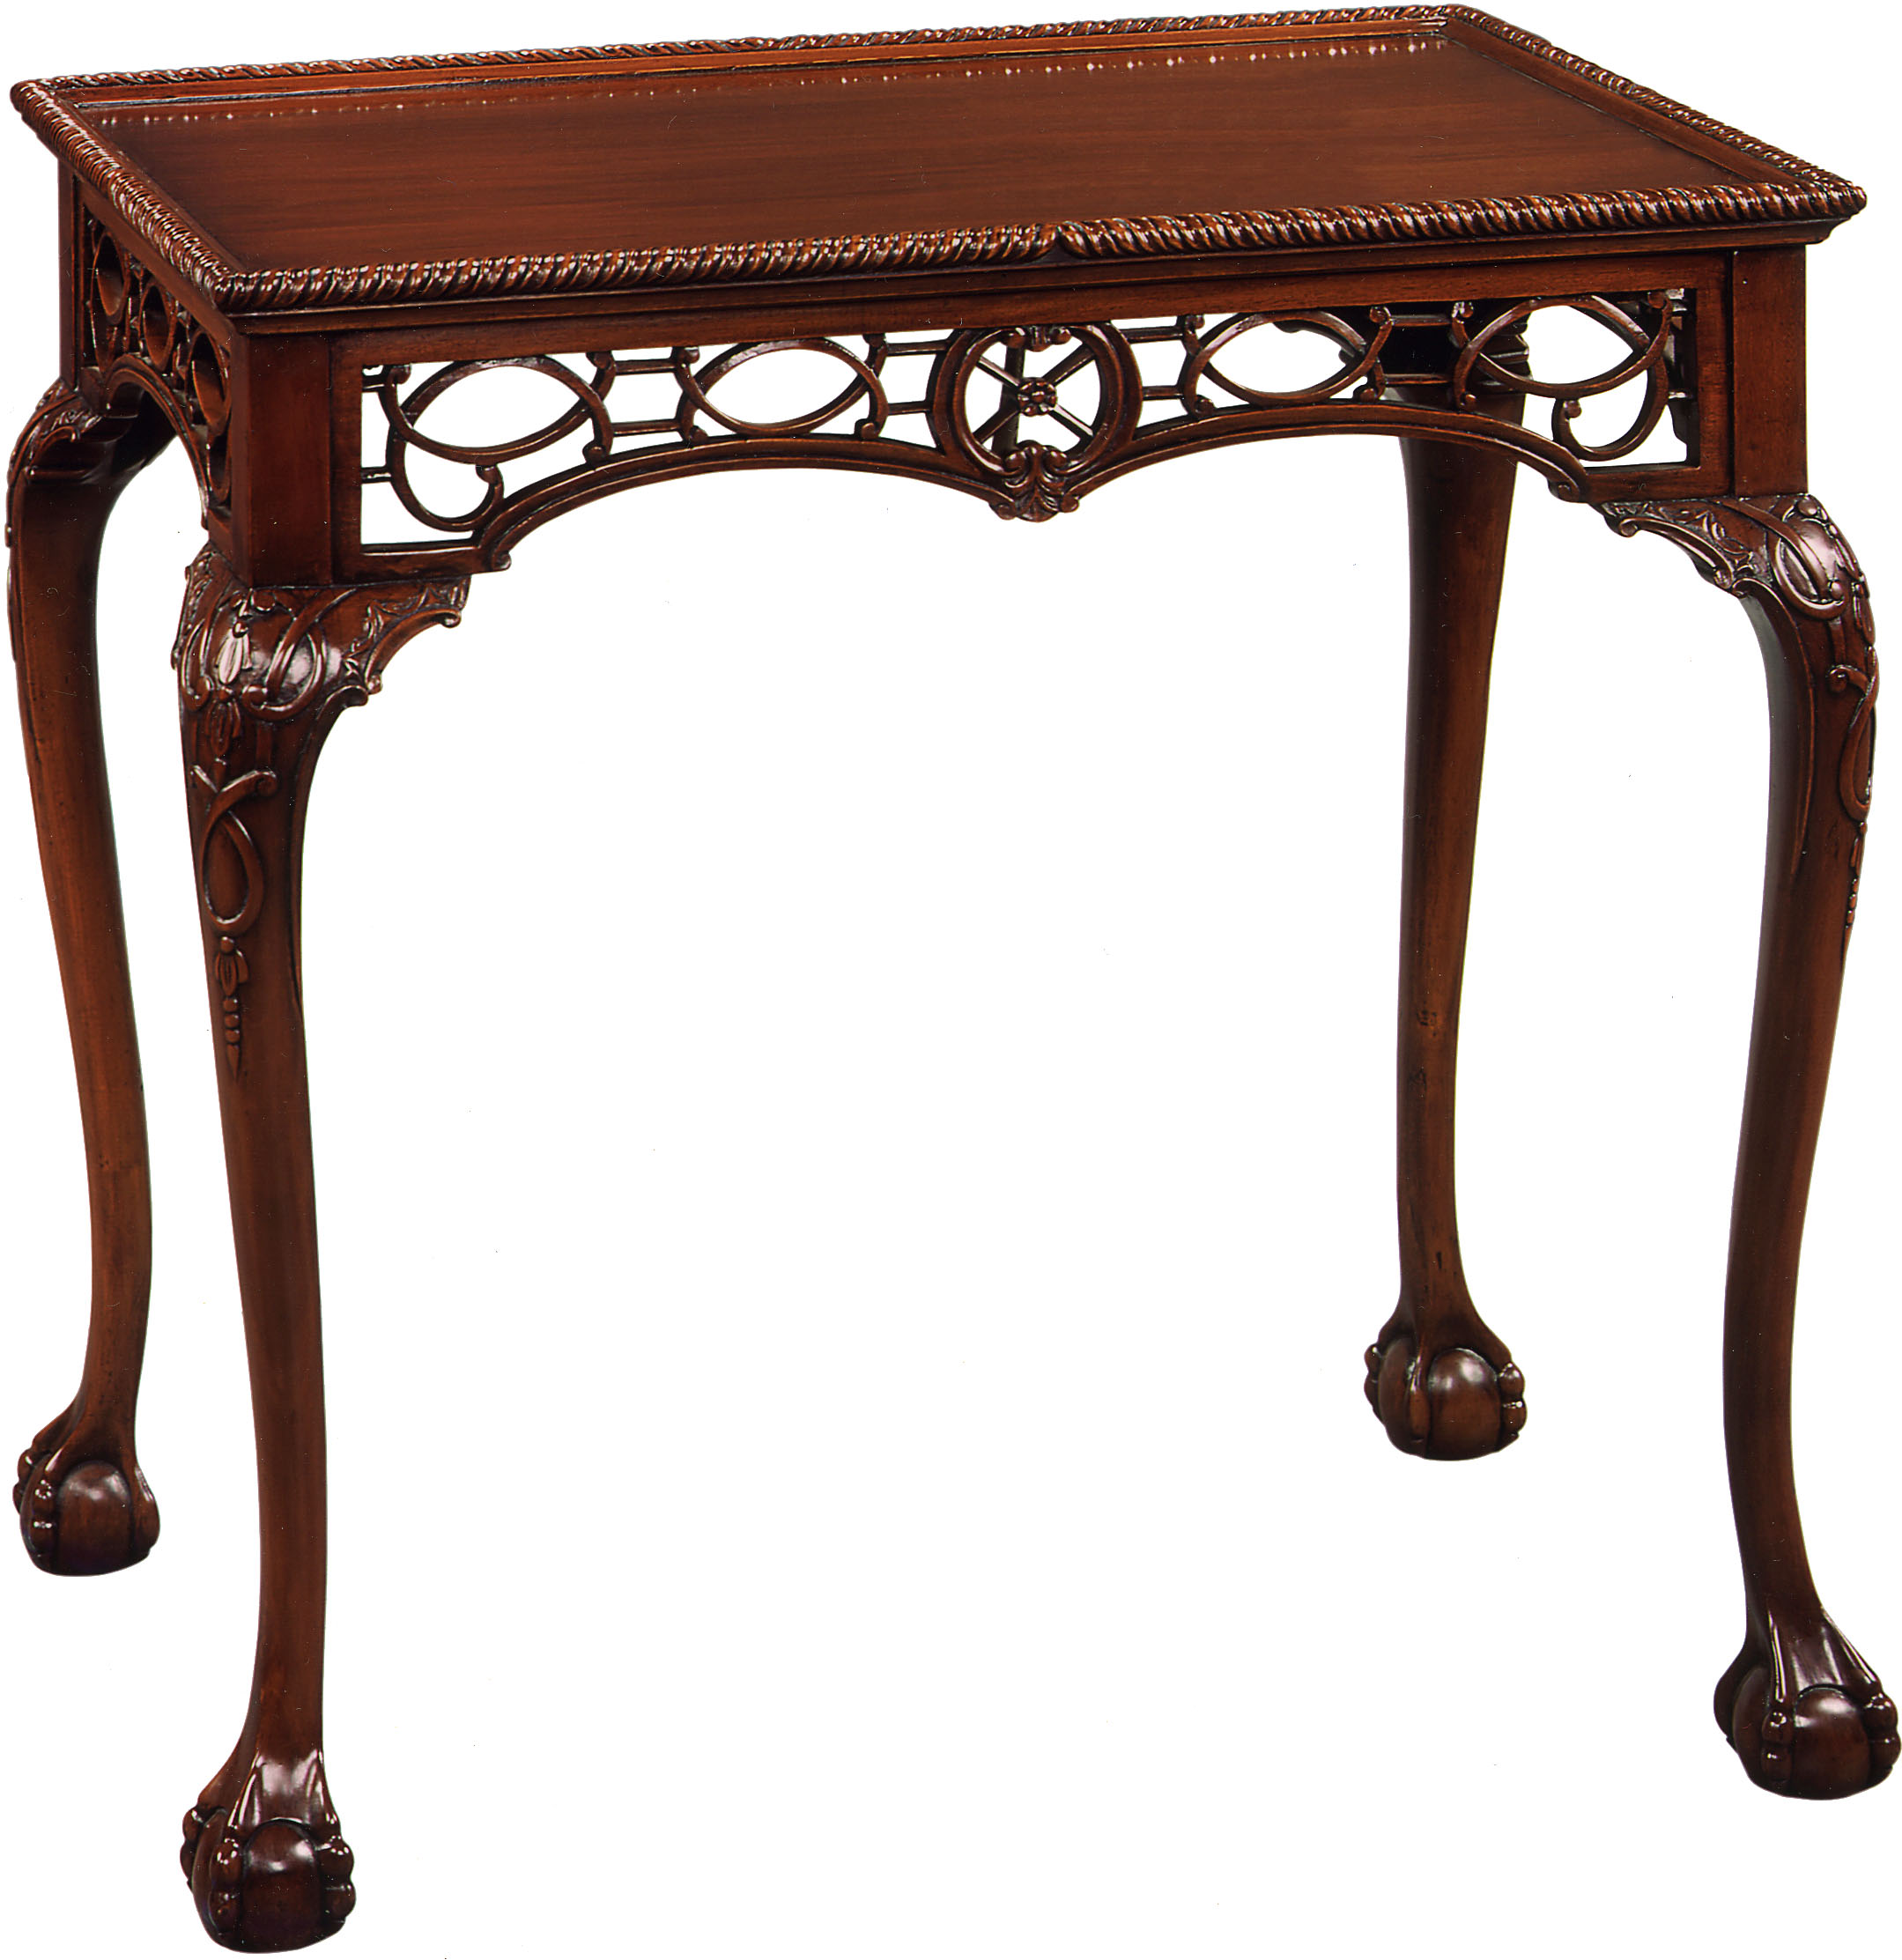 Most expensive furniture in the world top 5 for Worlds best furniture